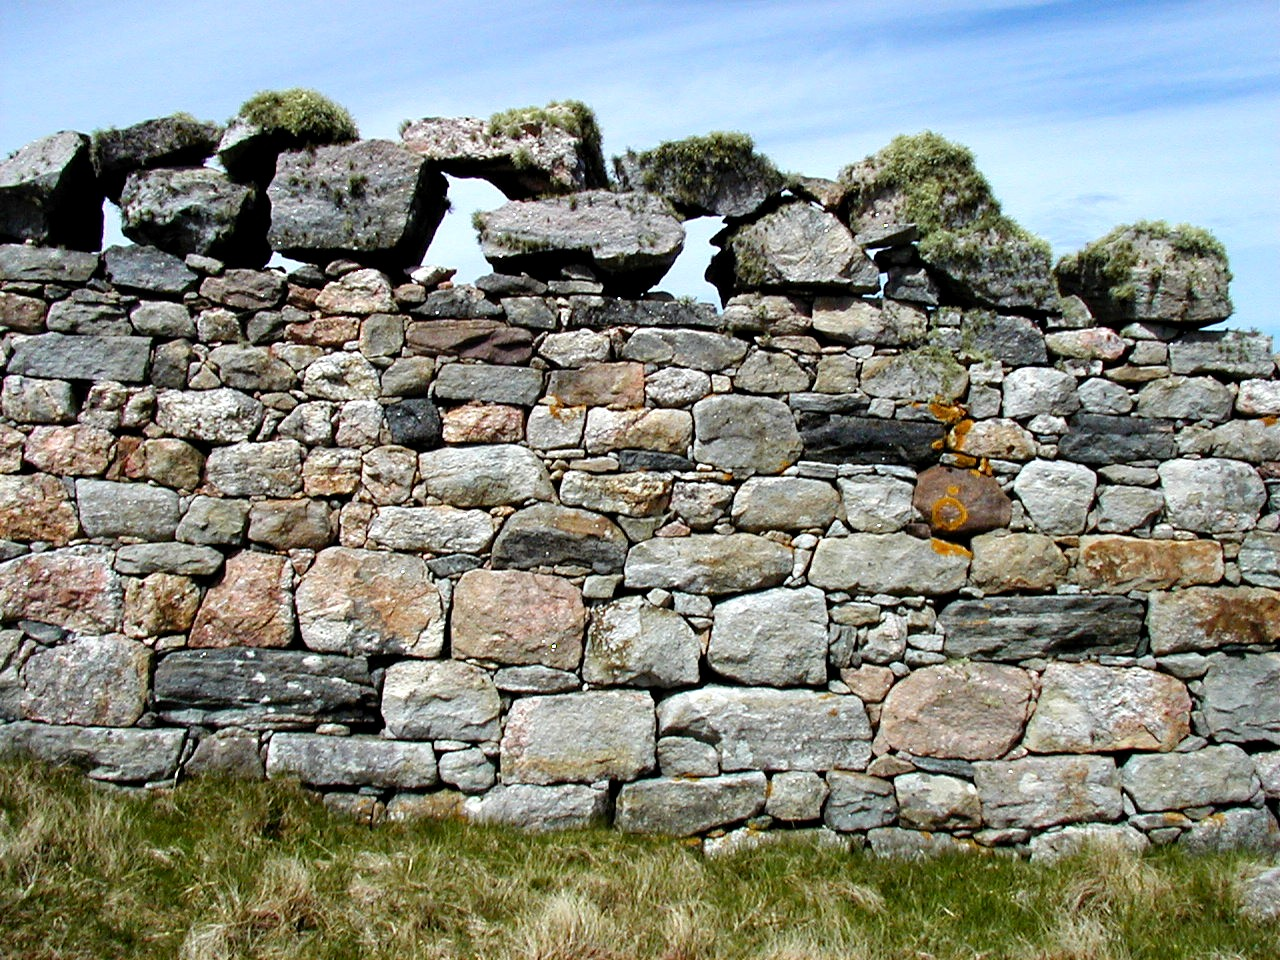 A wall at Cape Wrath on the northwest coast of Sutherland in the north of Scotland. Image courtesy of Donald Mitchell, Durness, Sutherland.